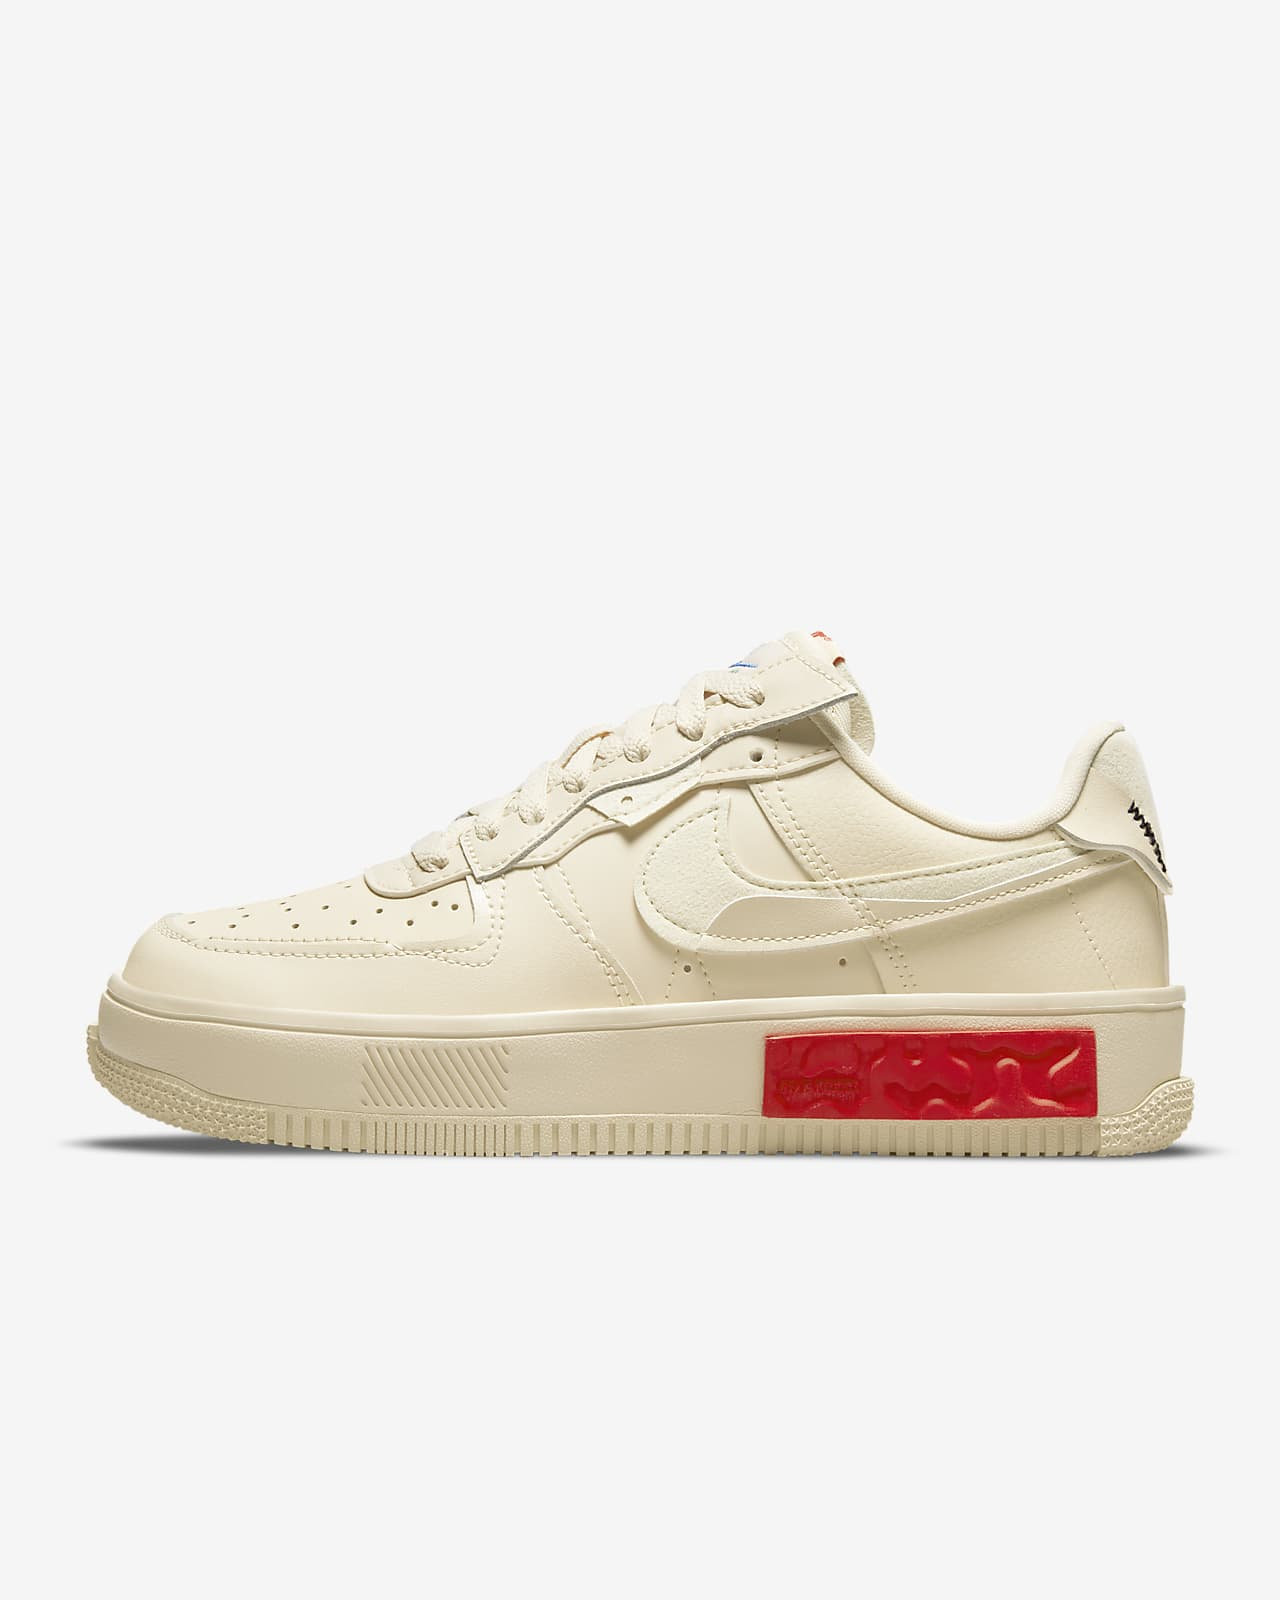 Chaussure Nike Air Force1 Fontaka pour Femme